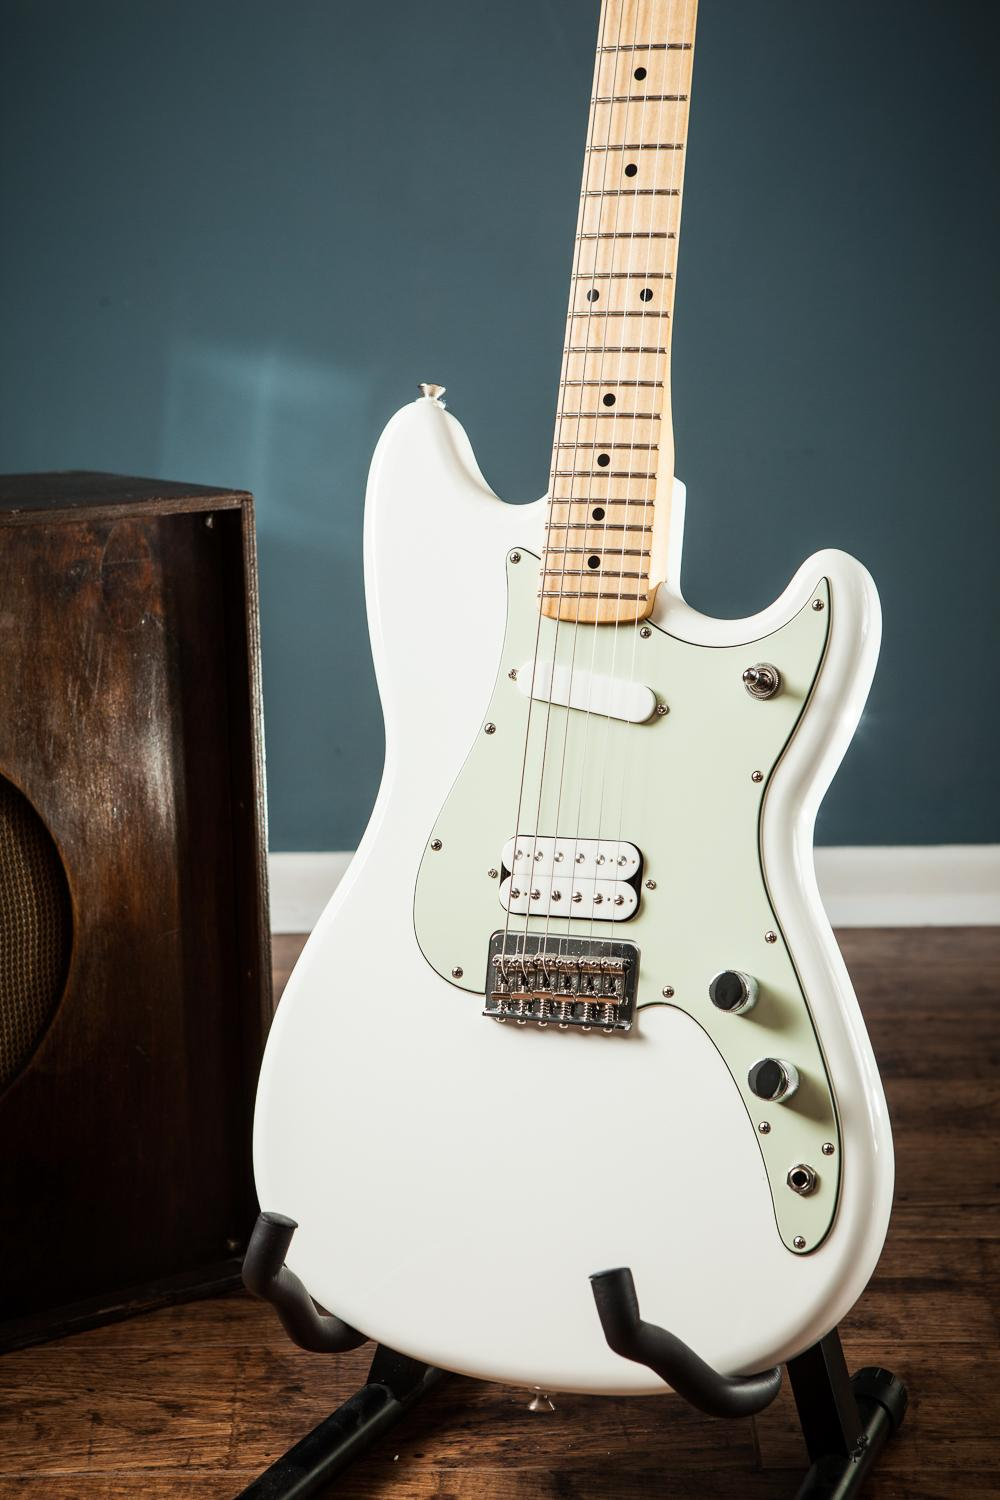 fender 2016 white duo sonic offset h s electric guitar mim duo sonic mustang hs ebay. Black Bedroom Furniture Sets. Home Design Ideas